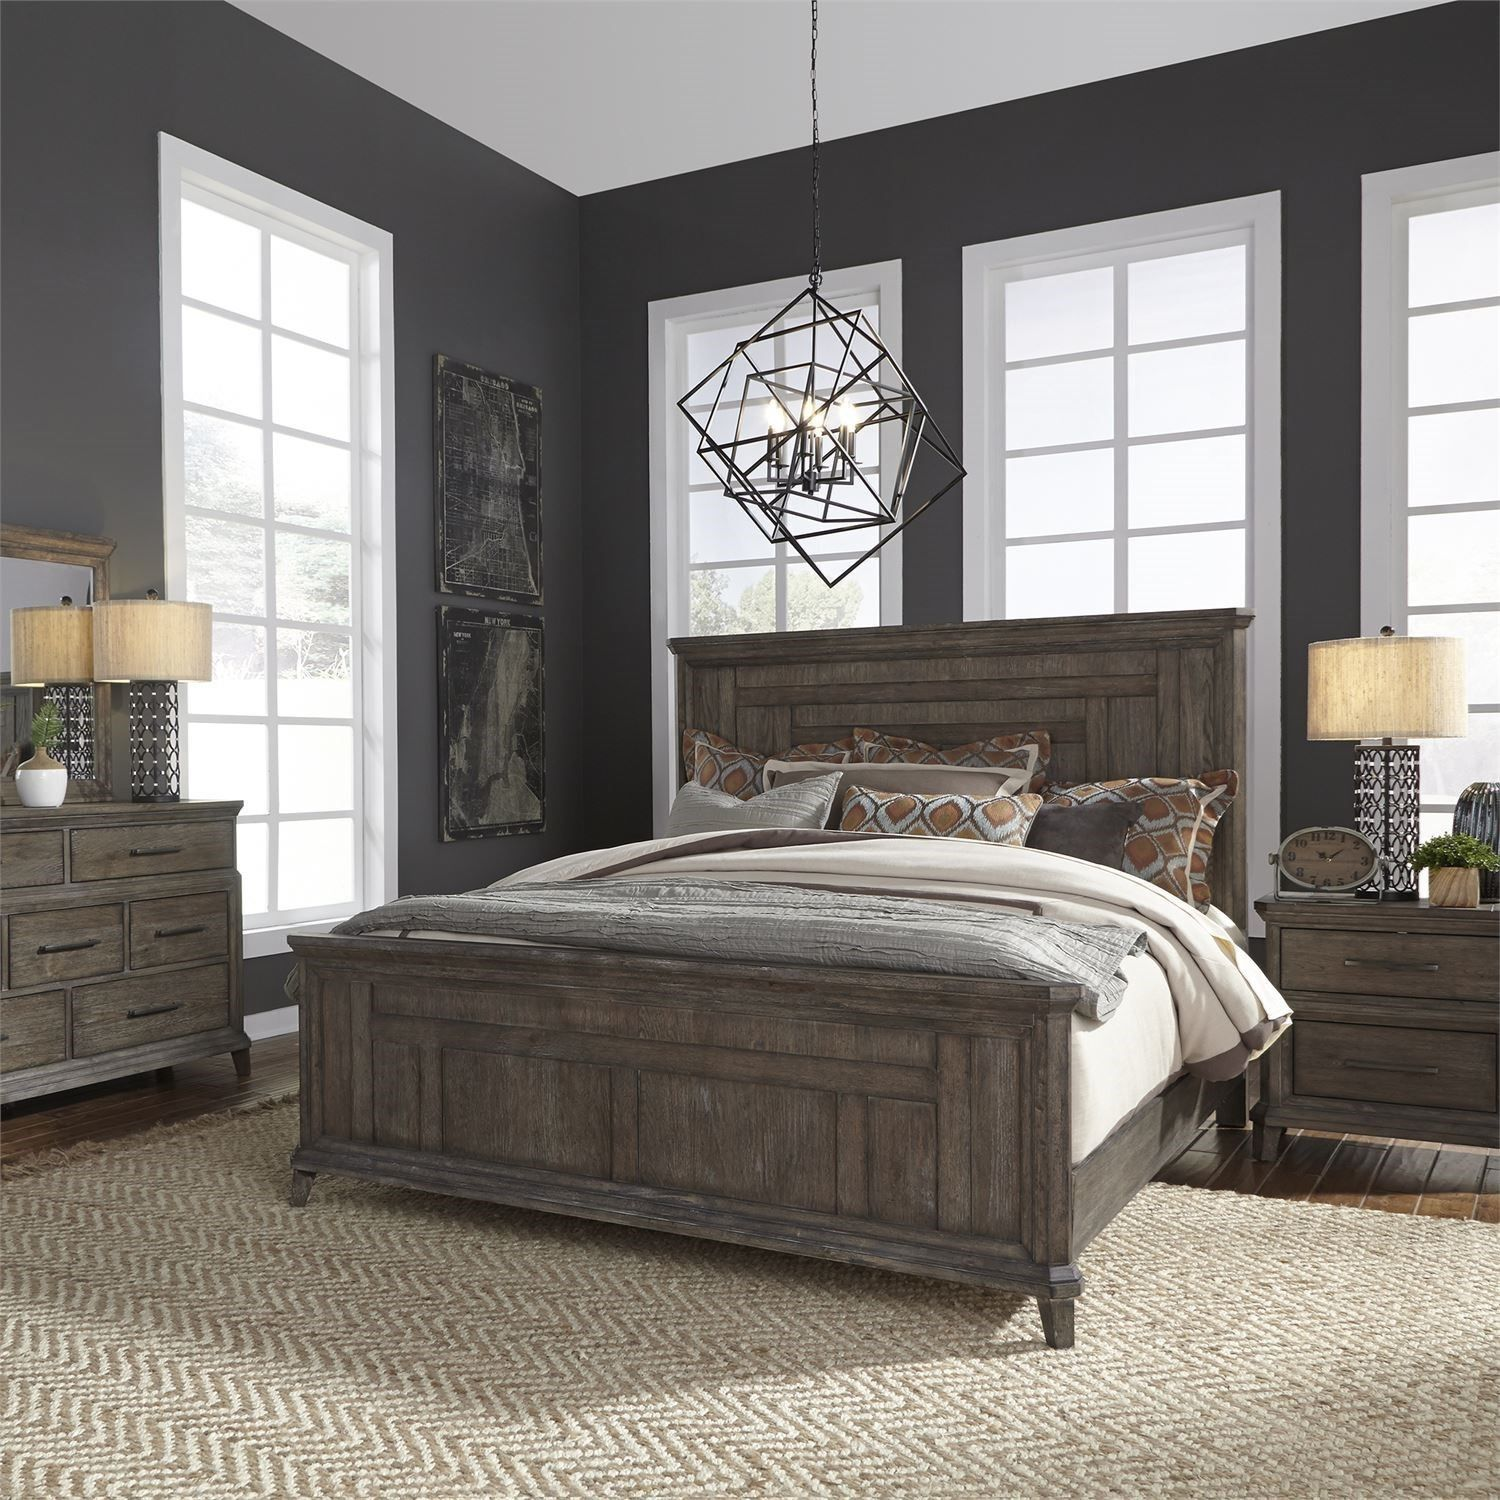 Artisan Prairie Queen Bedroom Group by Liberty Furniture